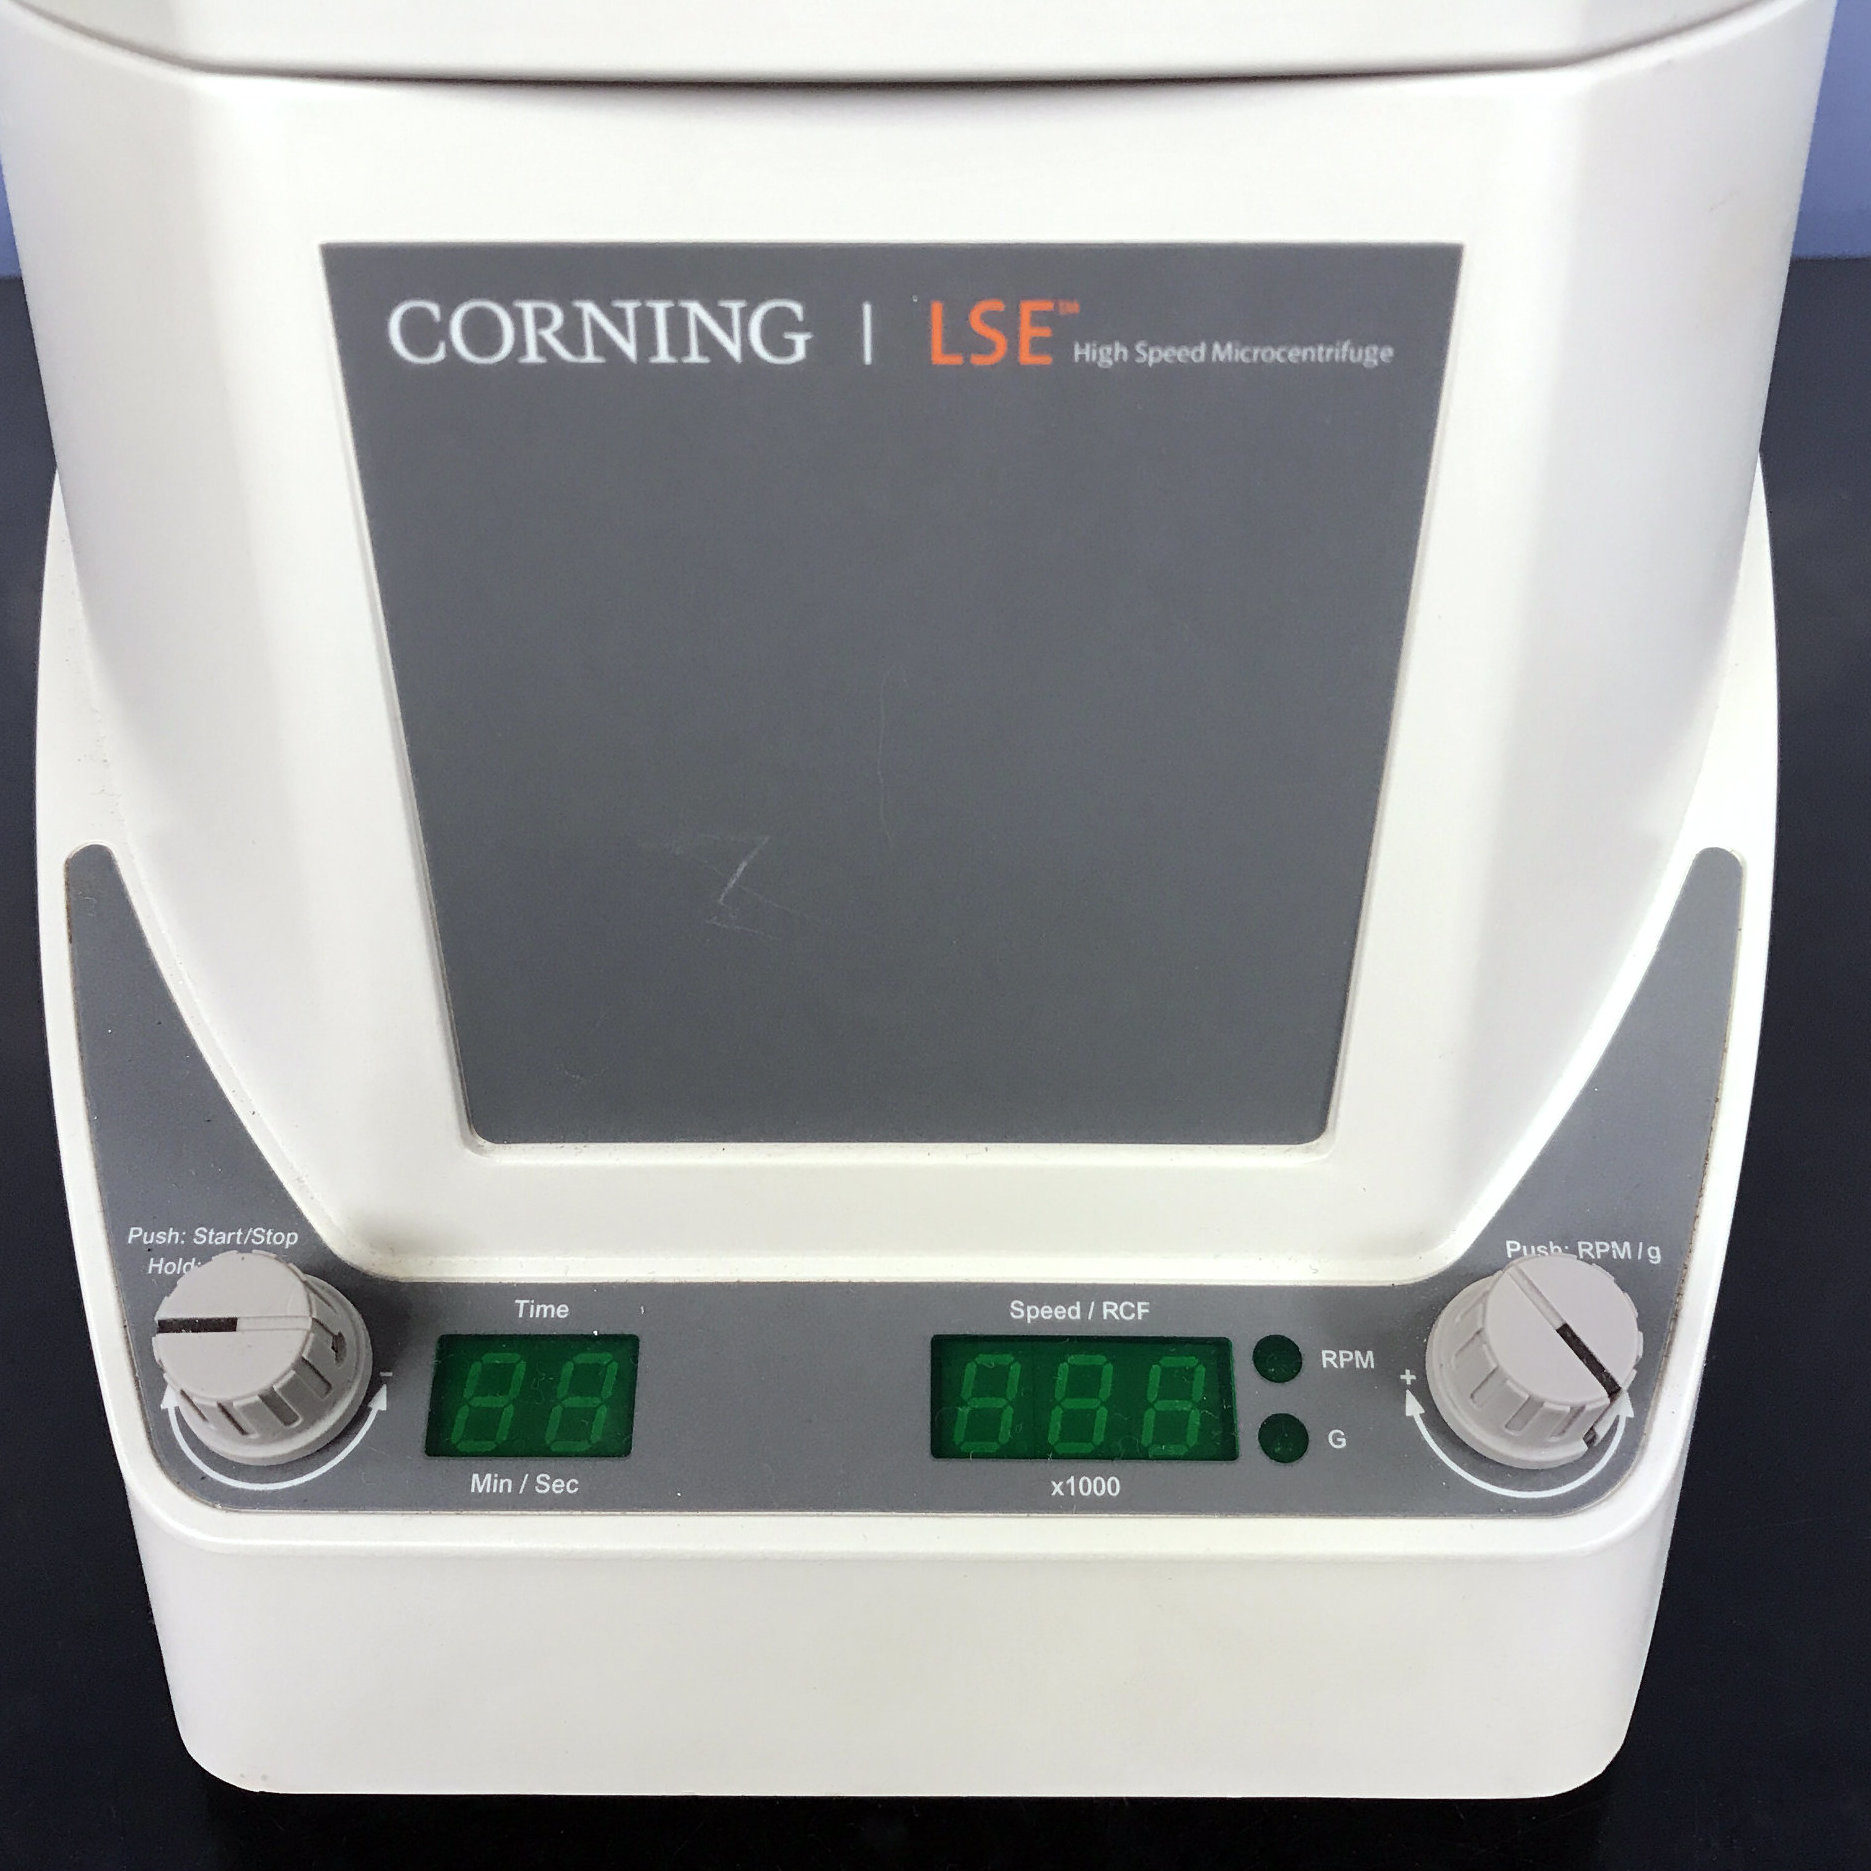 Corning 6765-HS LSE High-Speed Microcentrifuge Image